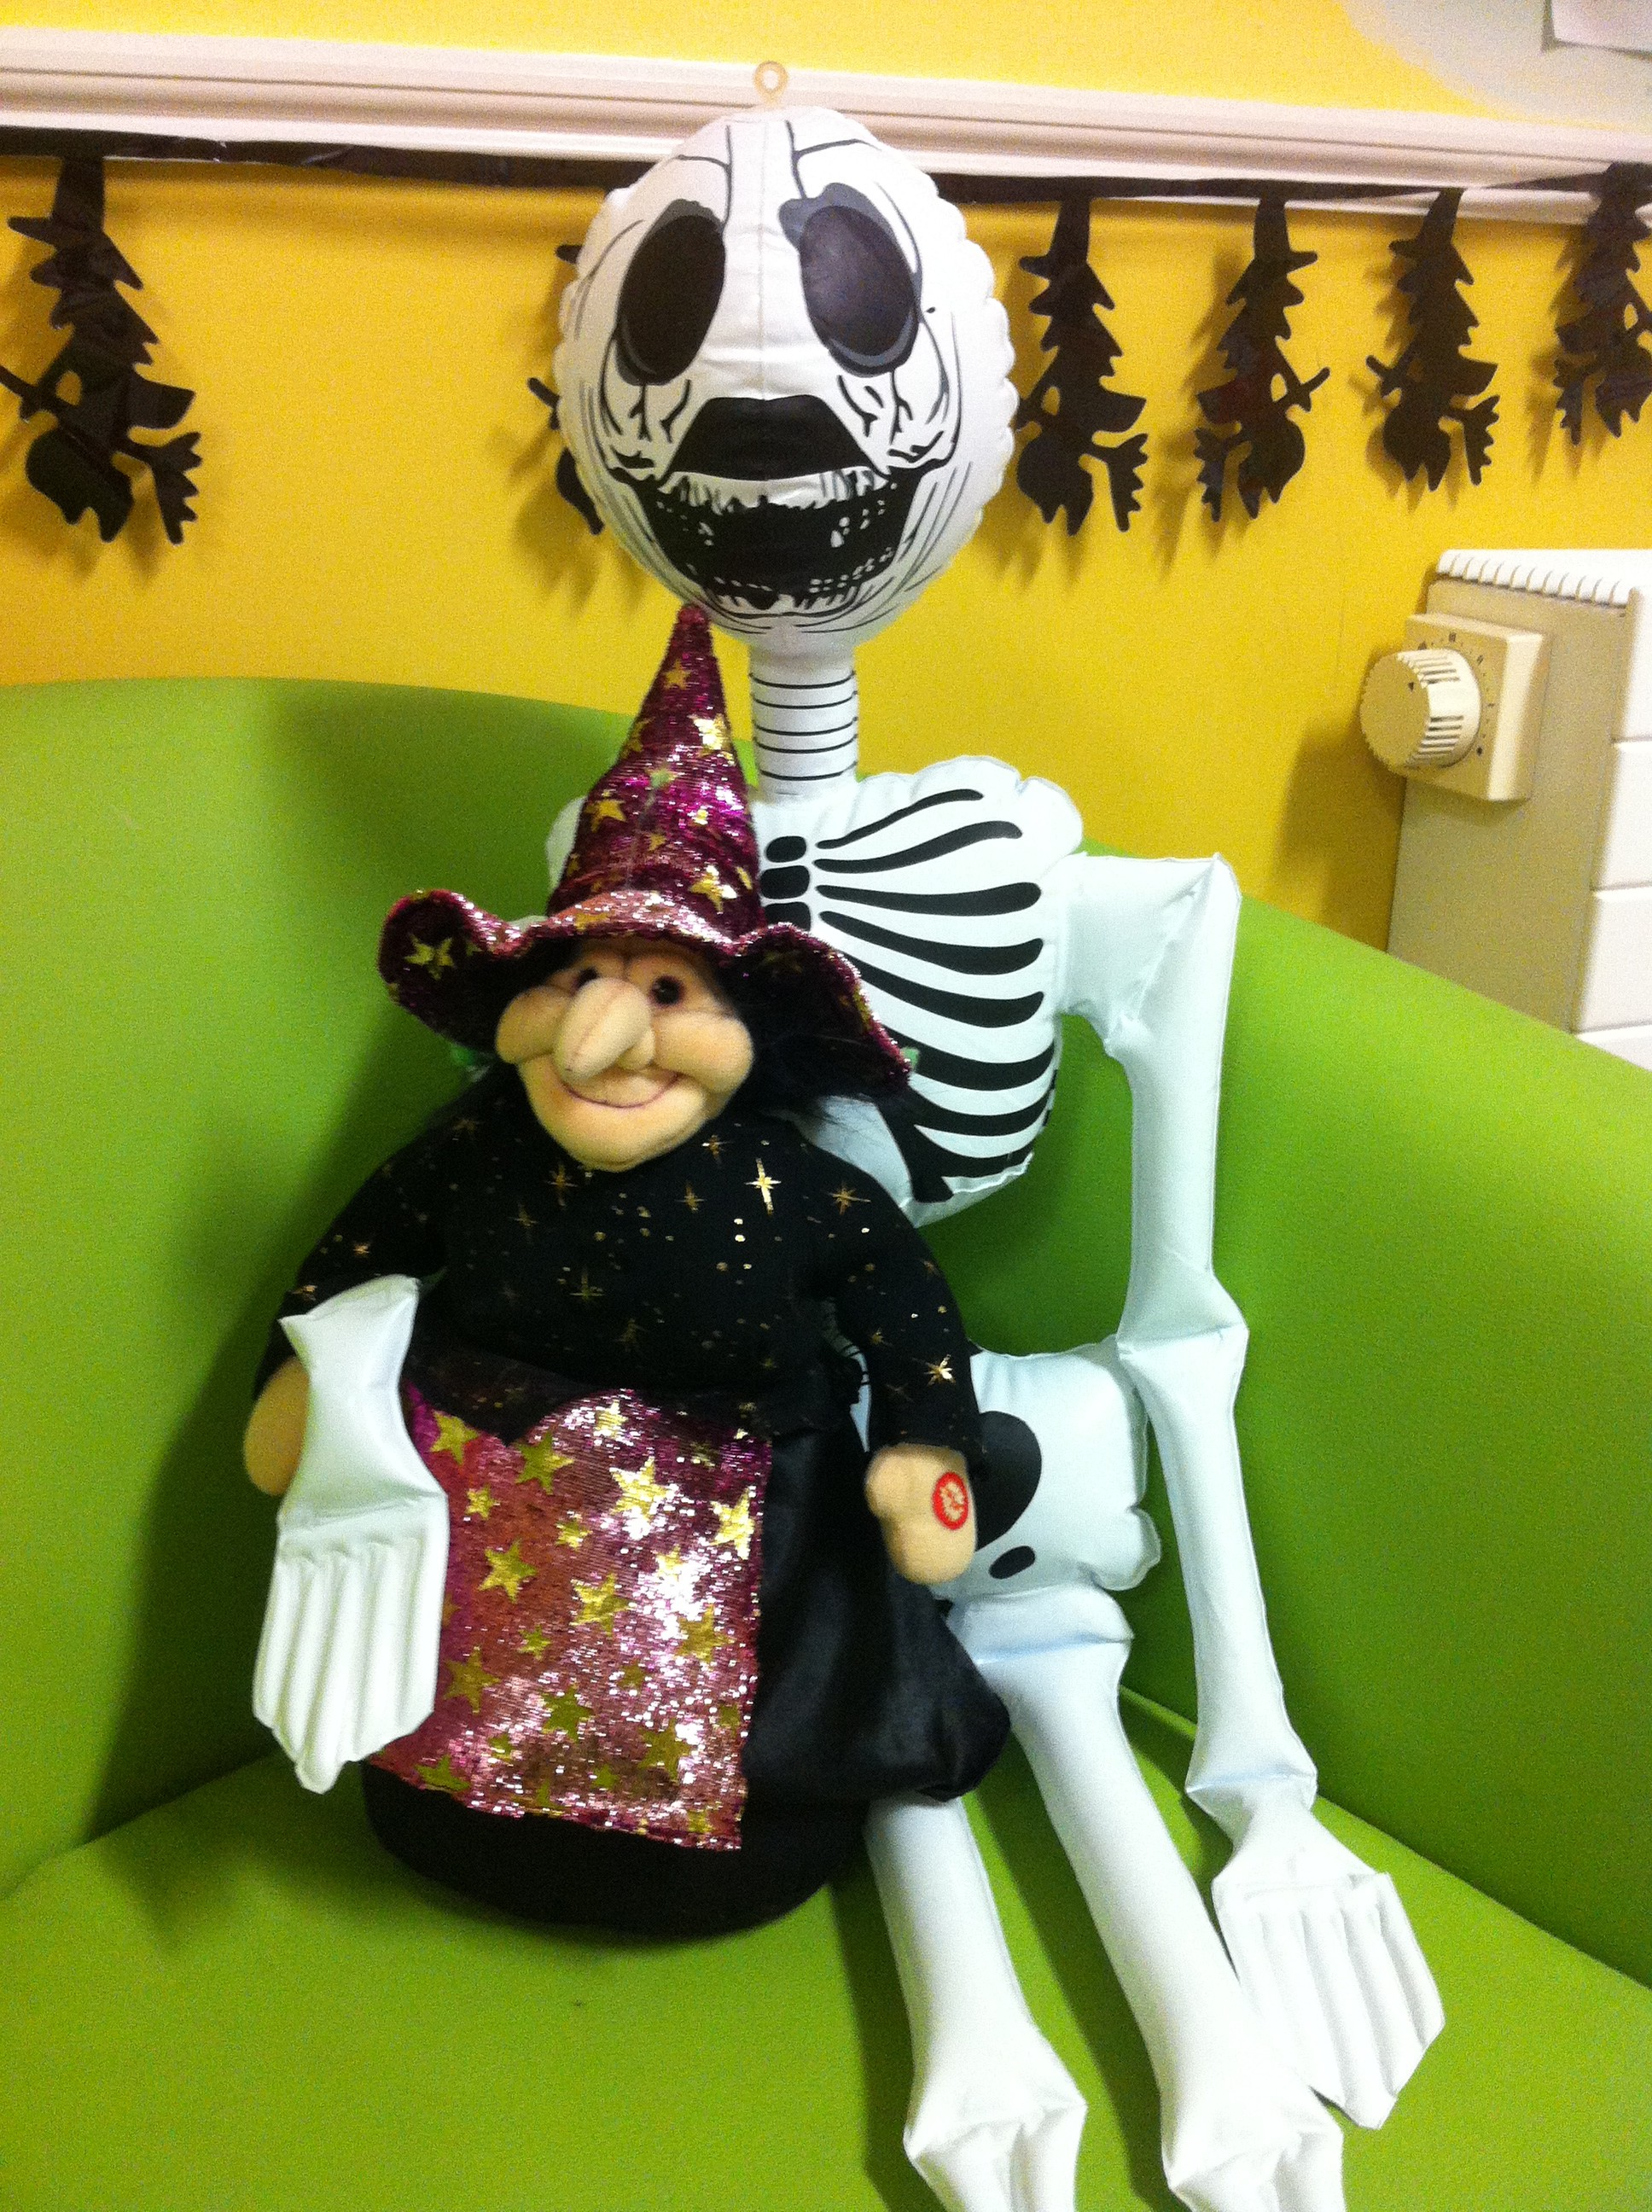 Halloween preparations are underway at Crawford Childcare